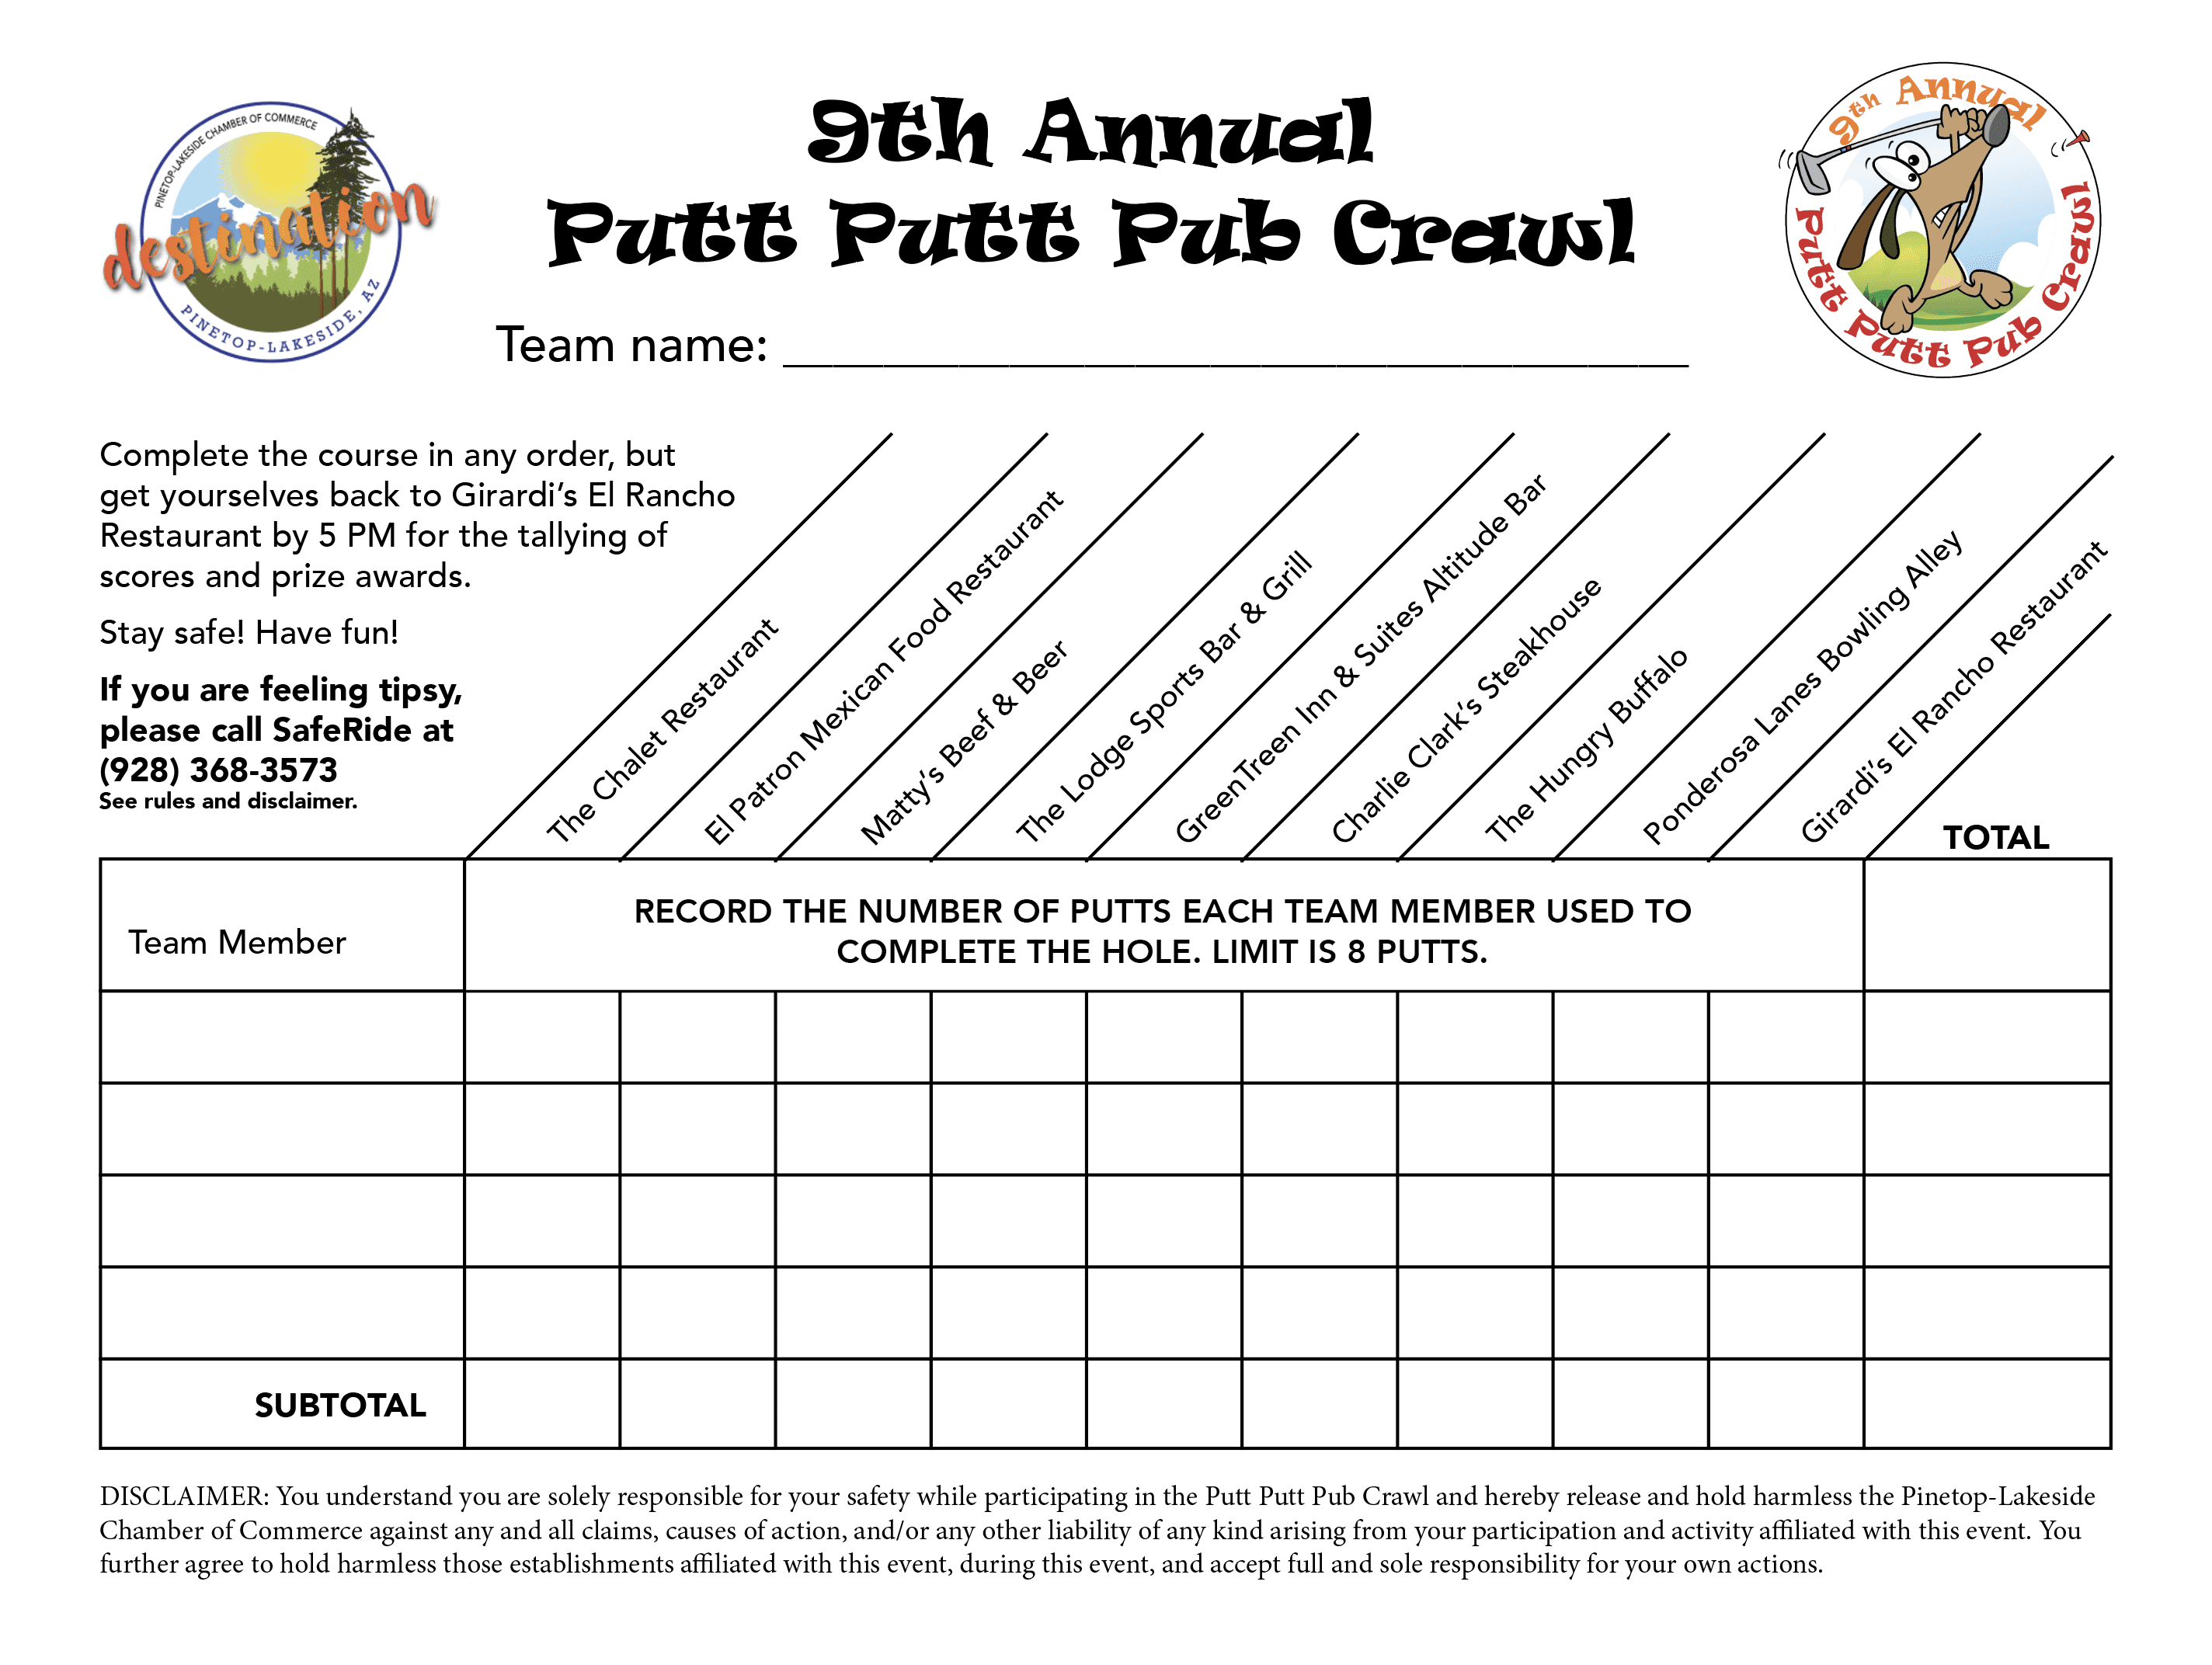 Putt Putt Pub Crawl Official Scorecard